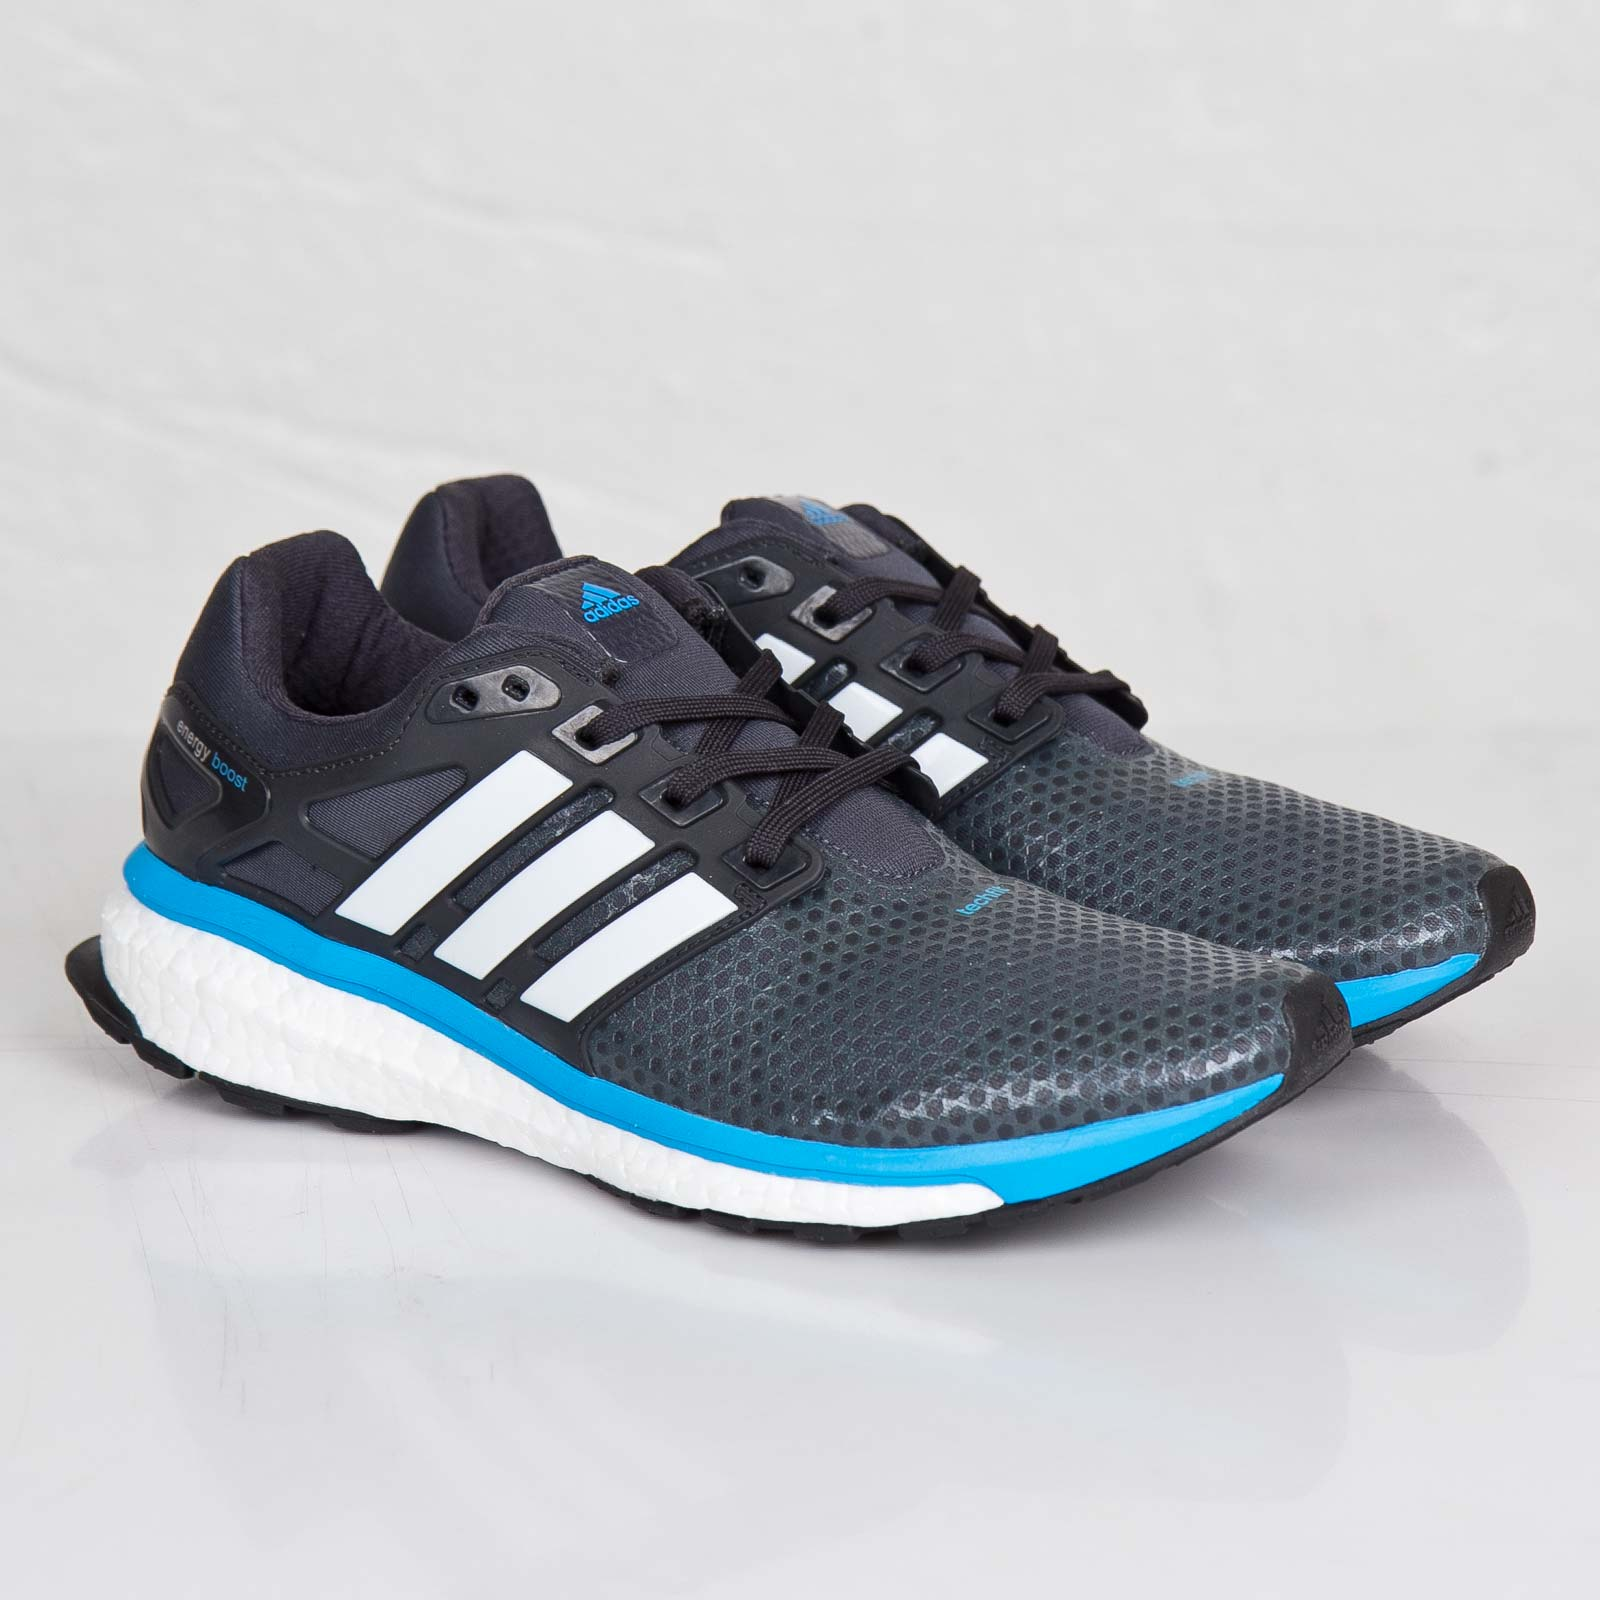 ADIDAS Energy Boost 2.0 ATR (grey blue white) unboxing & on feet review